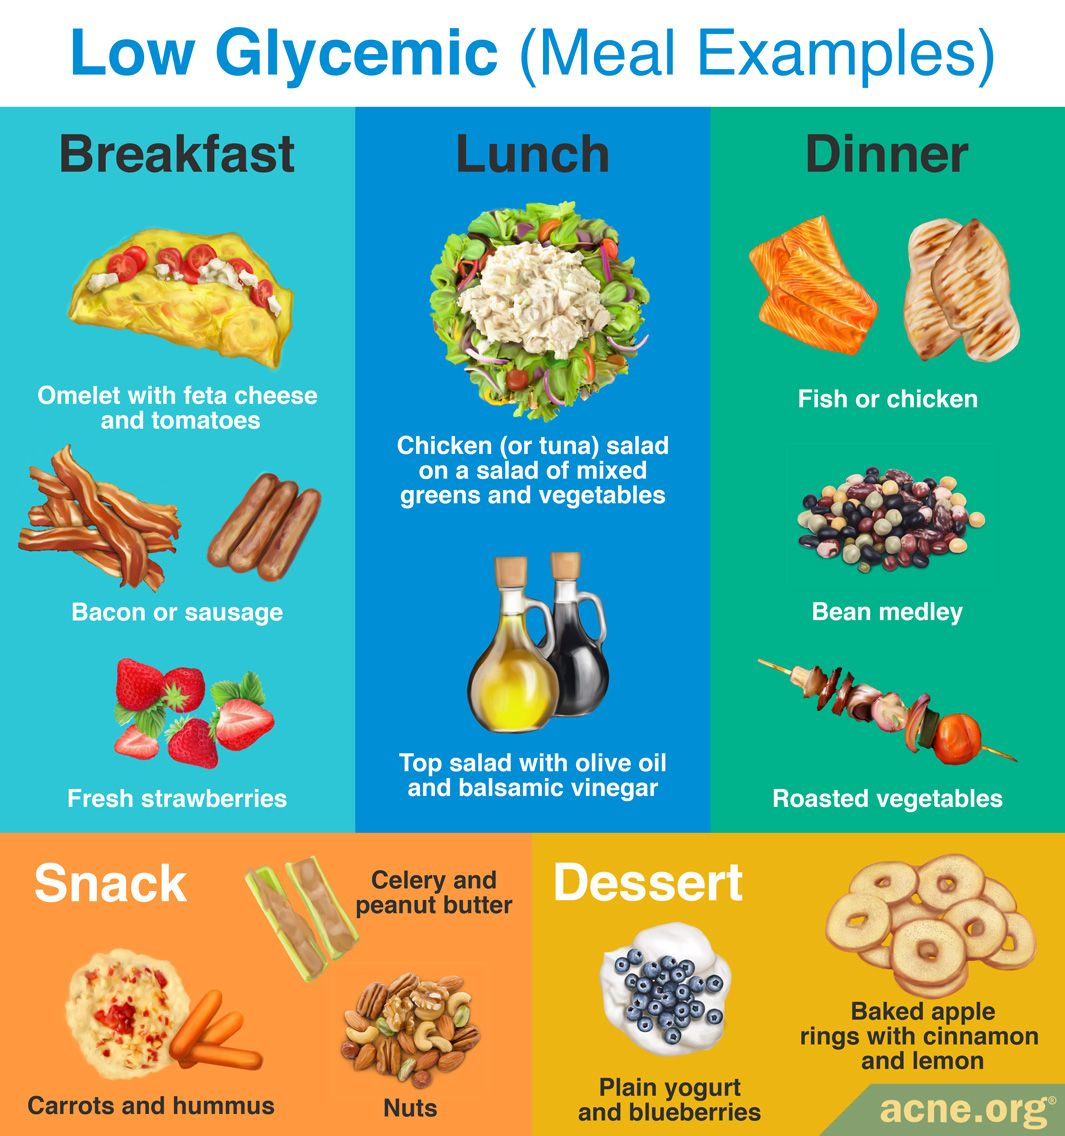 Low Glycemic Meal Examples